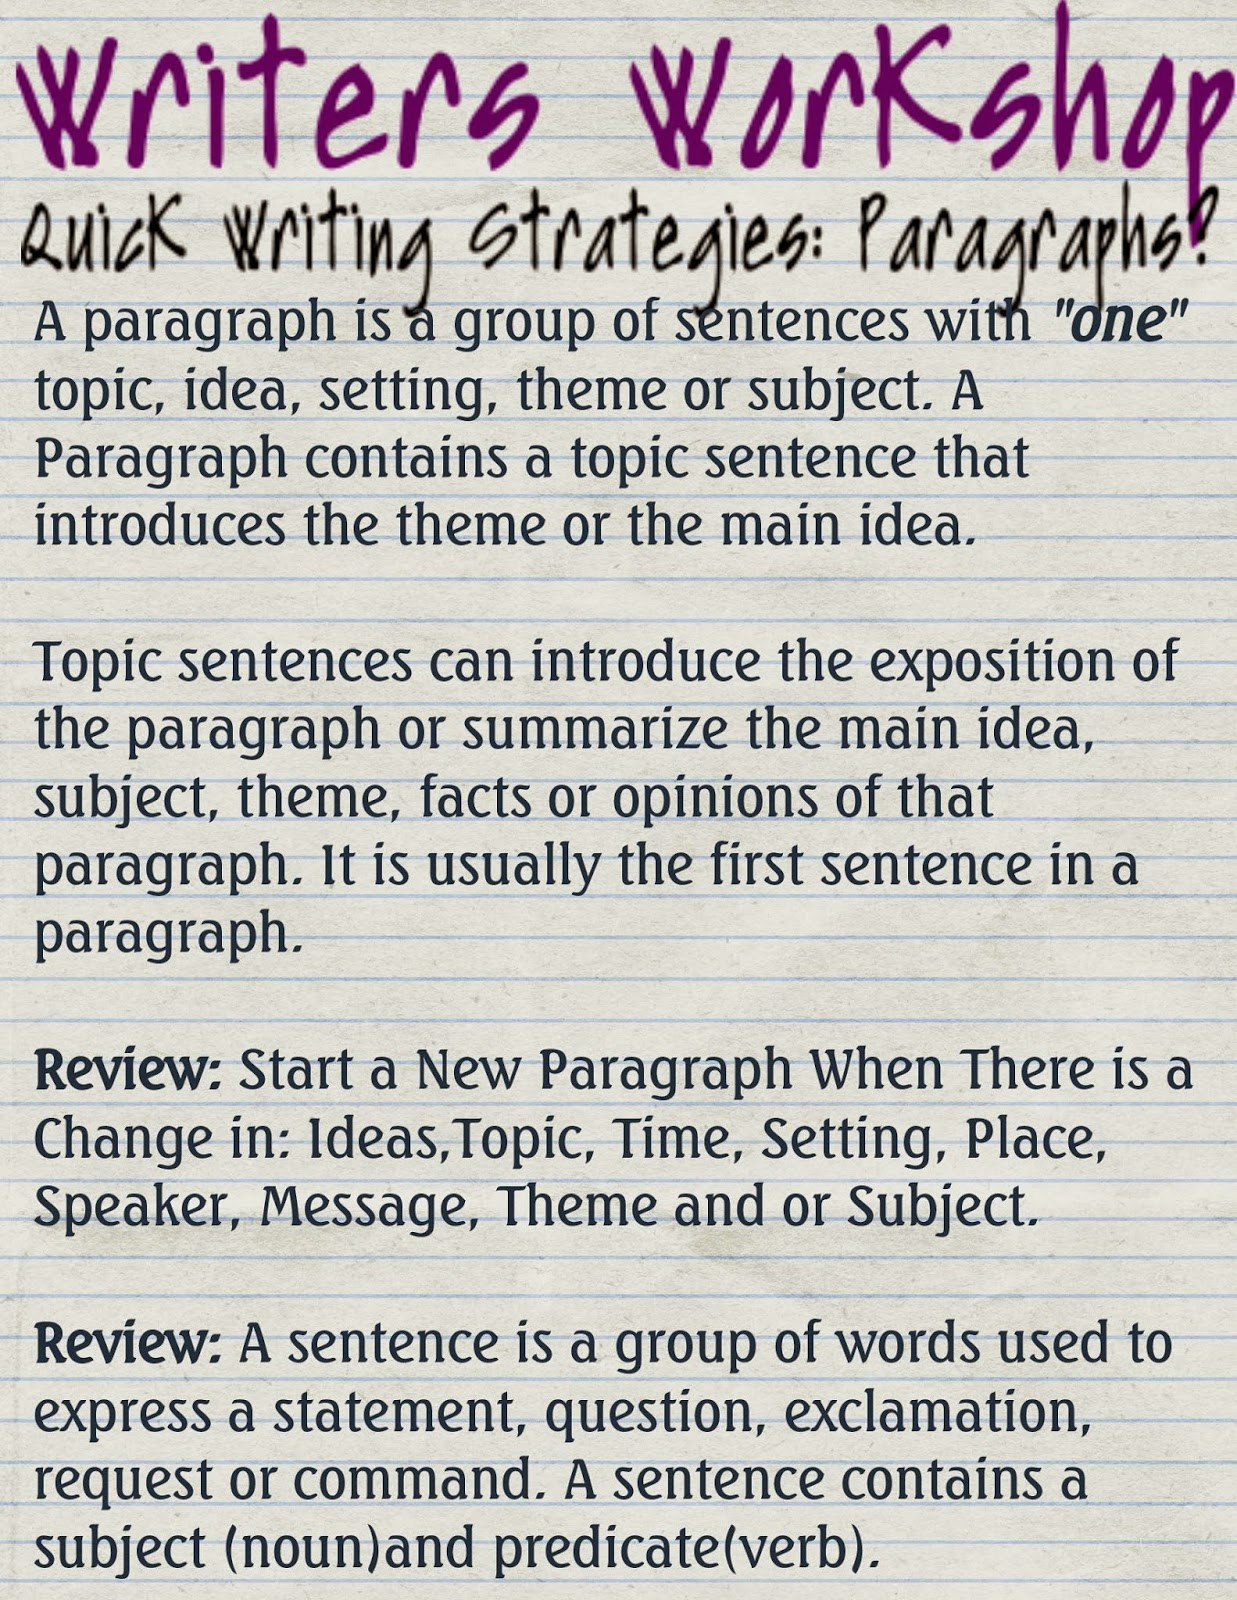 writers workshop Writers' workshop is an approach to writing instruction that addresses the needs of all students in the classwriters' workshop begins with a focus lesson where the teacher explicitly models the process and conventions of writing.